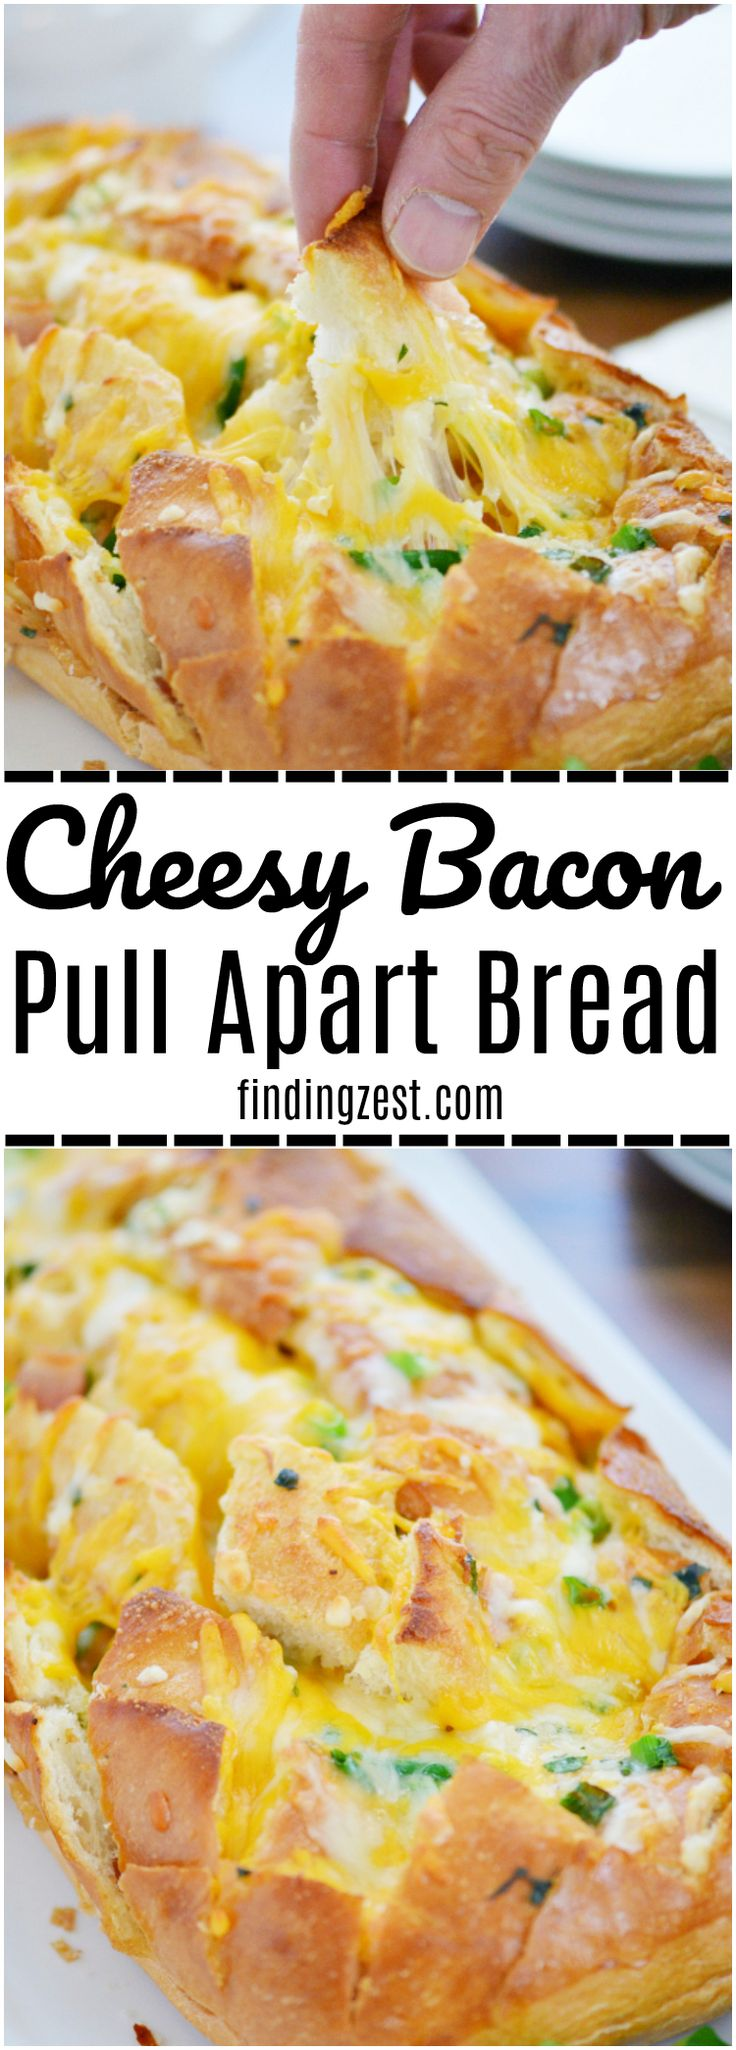 This Cheesy Bacon Pull Apart Bread is the perfect appetizer for your holiday ent…